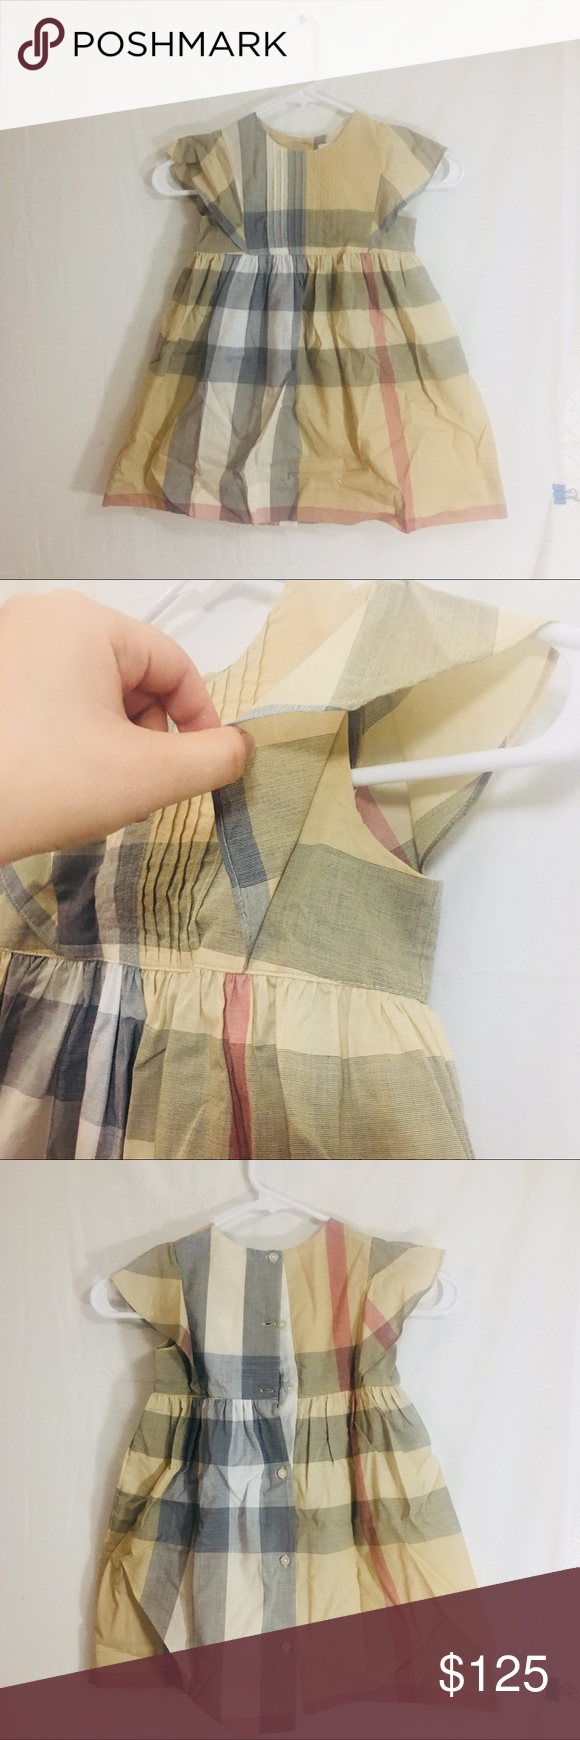 bfd11d1f4 Burberry girl dress new with tag 100%cotton Size is 4Y 104cm(39-41 ...